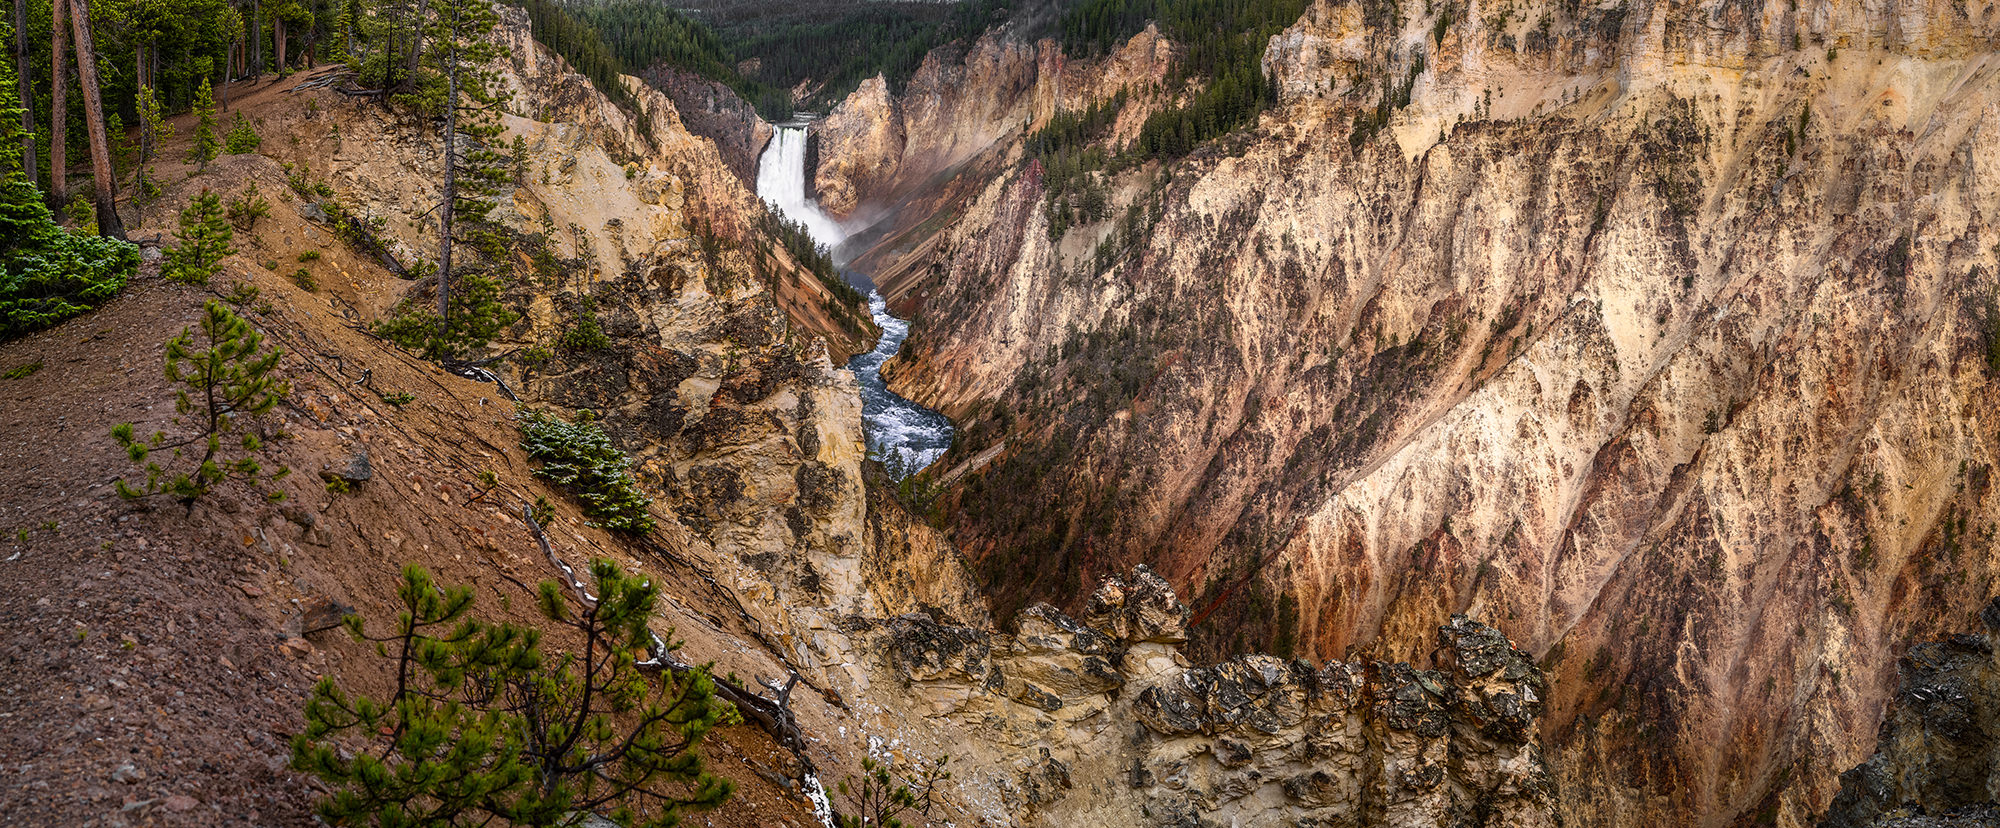 Grand-Canyon-of-the-Yellowstone.jpg